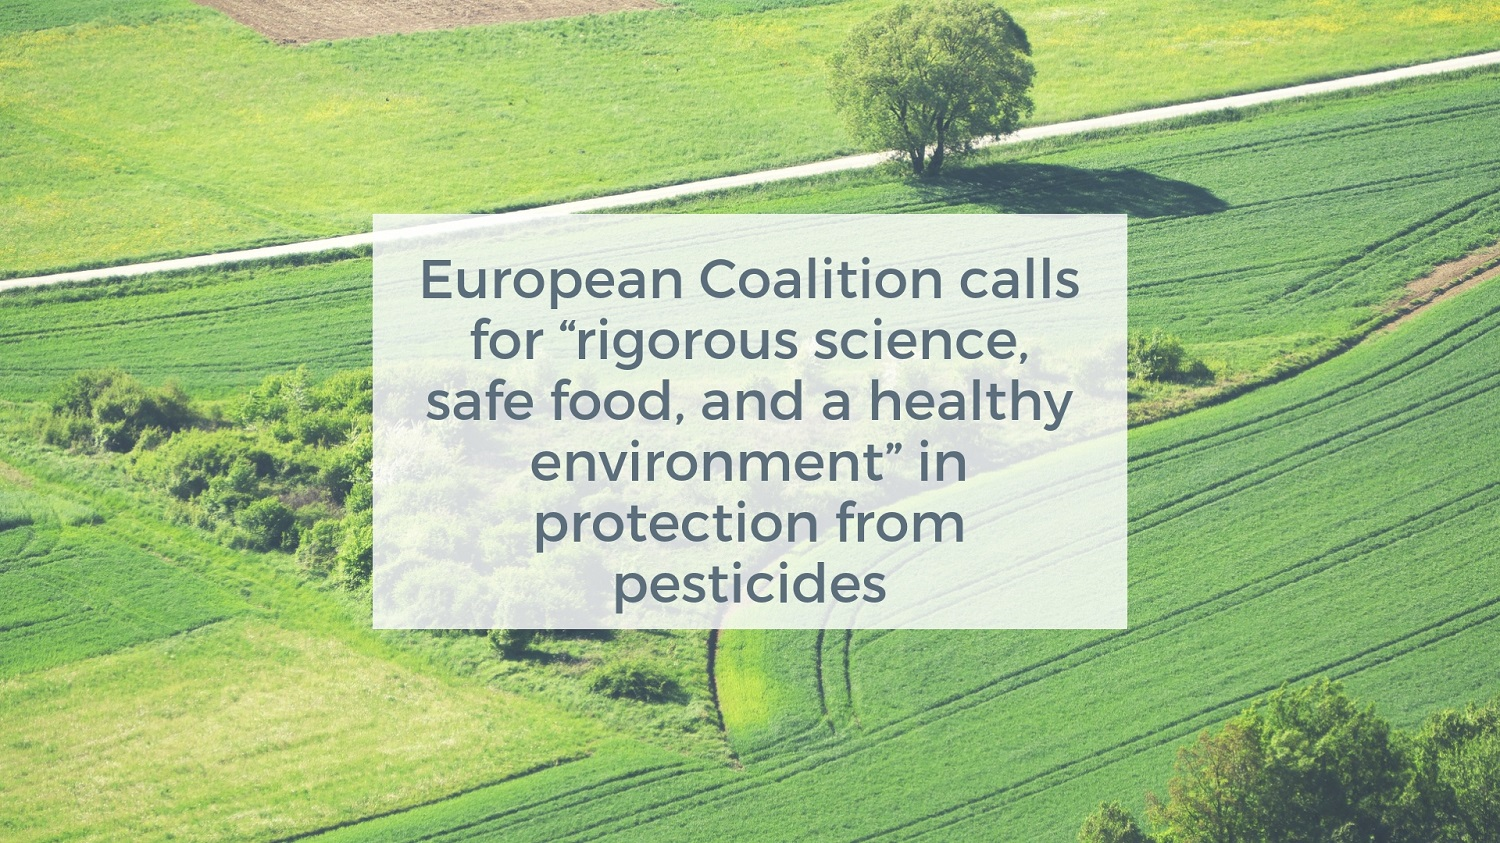 Coalition calls for pesticide regulation